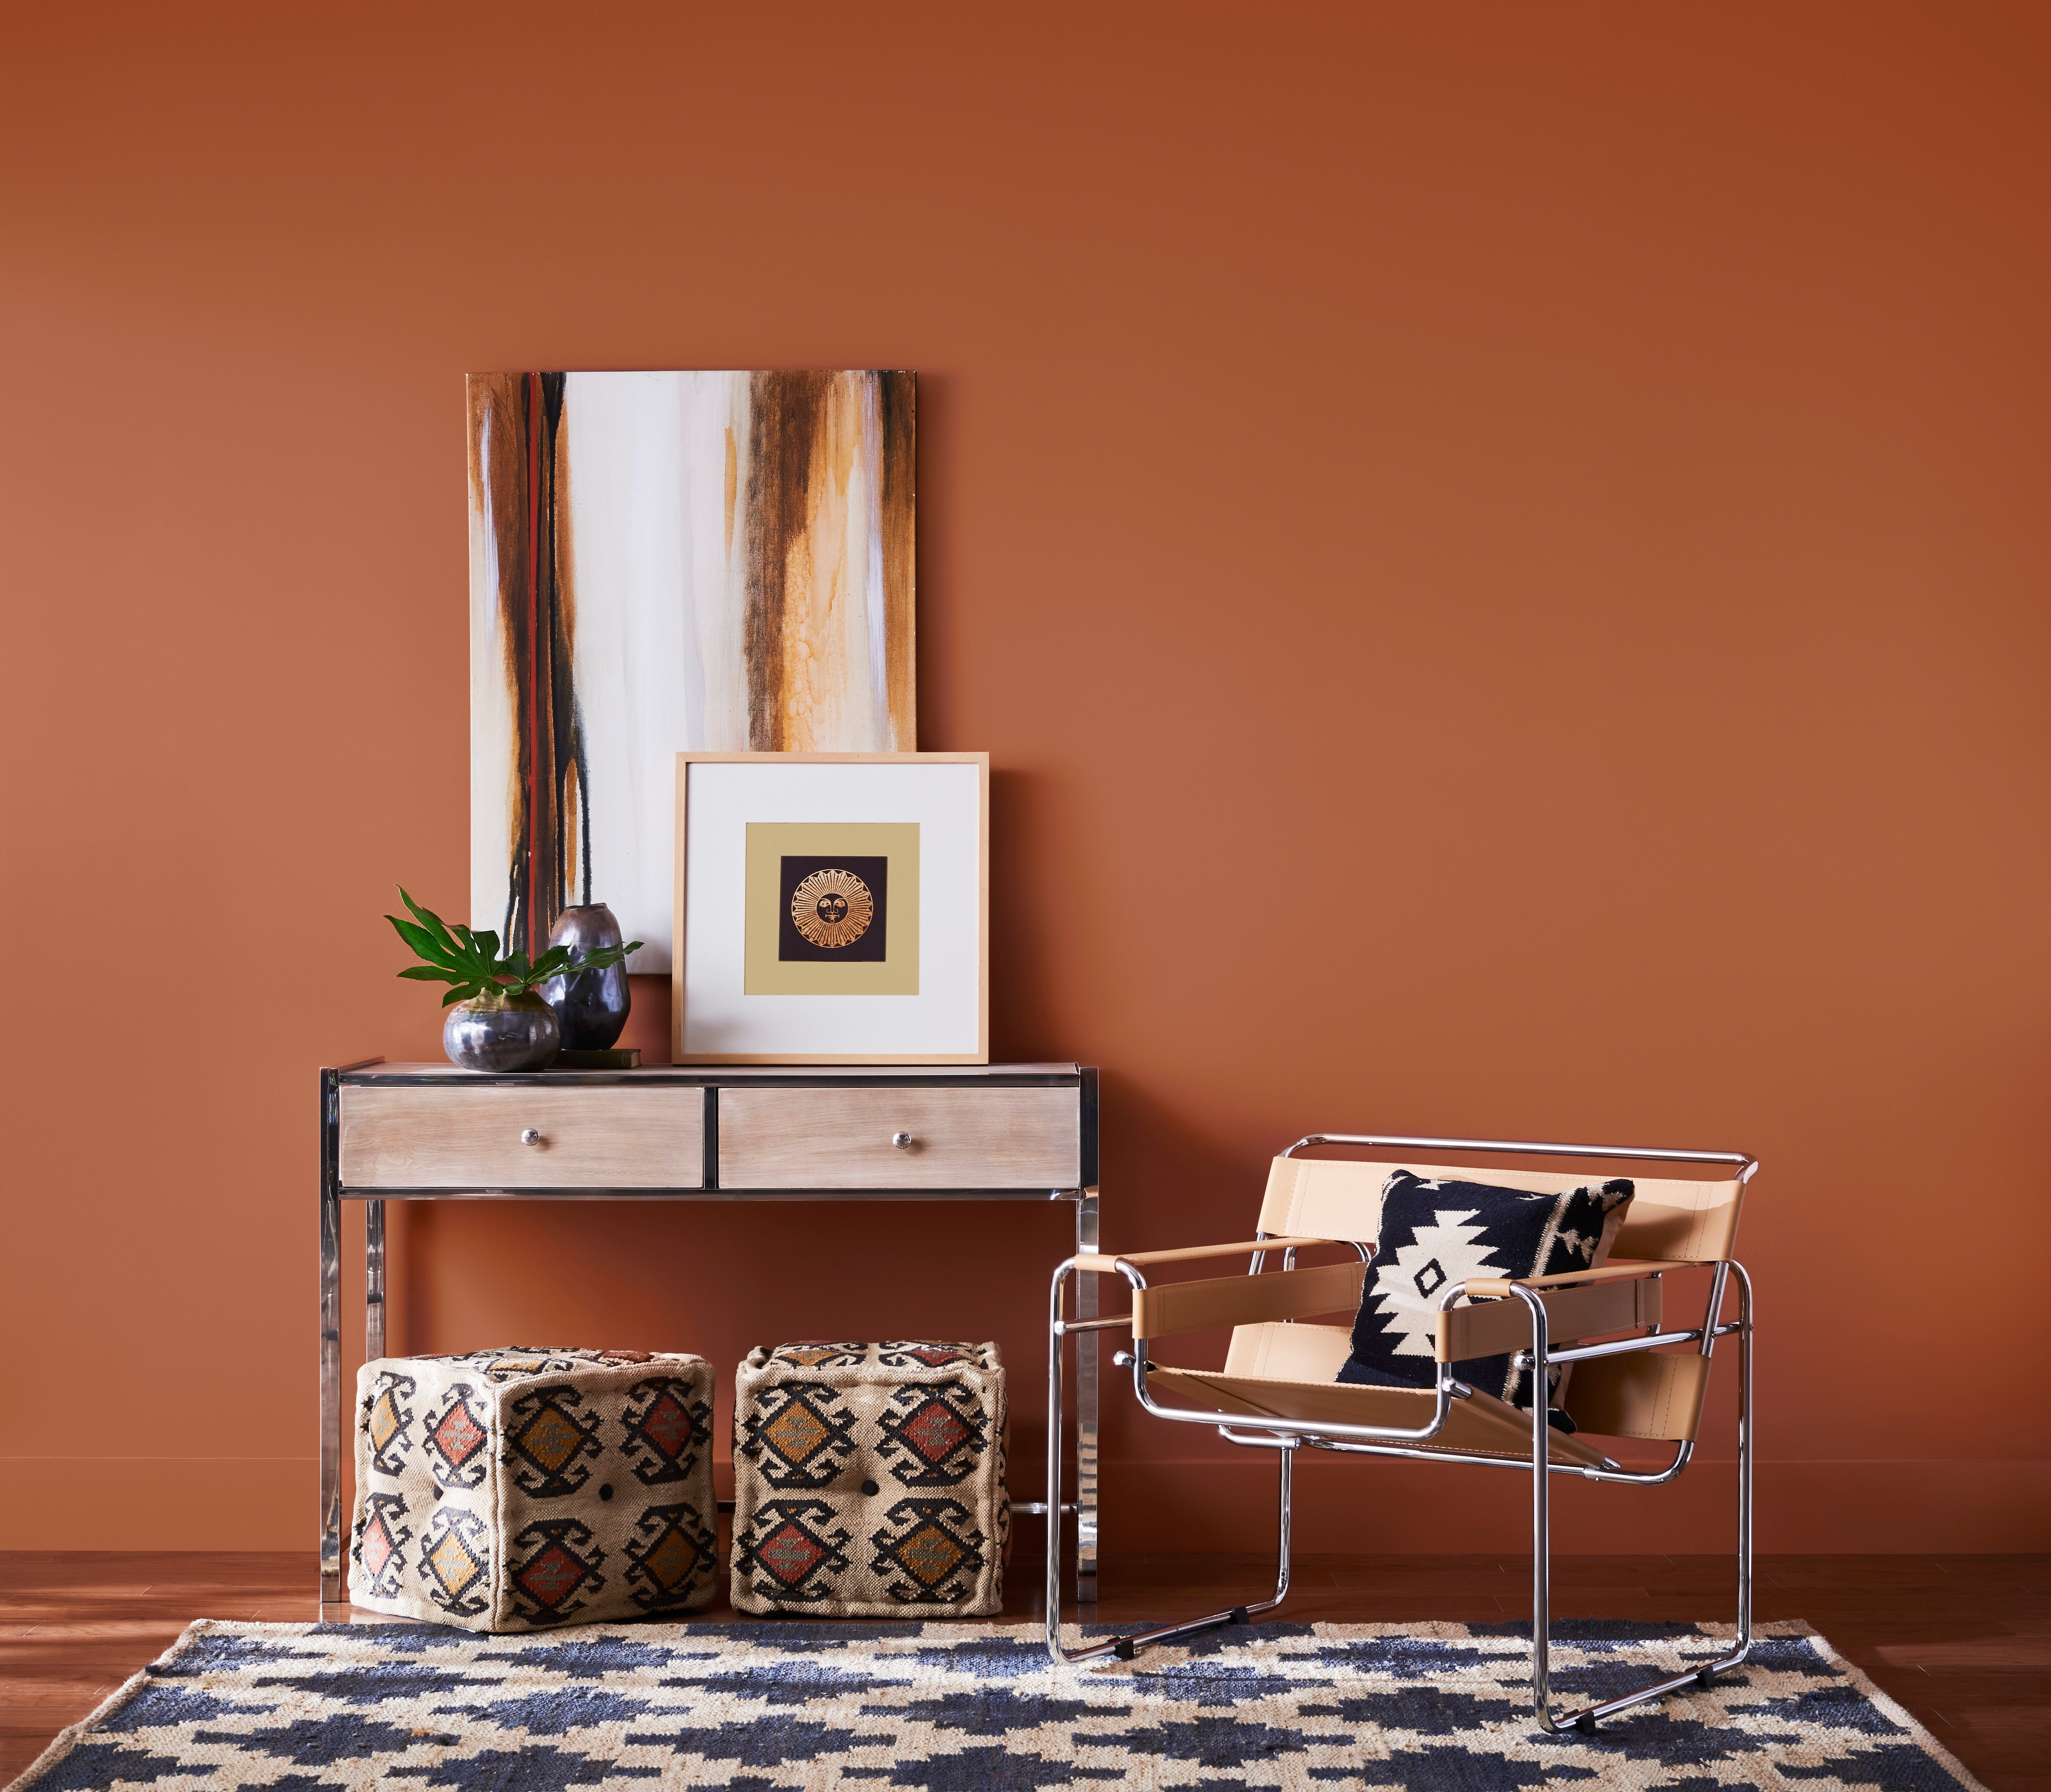 Sherwin-Williams_Color of the Year_Cavern Clay SW 7701_2